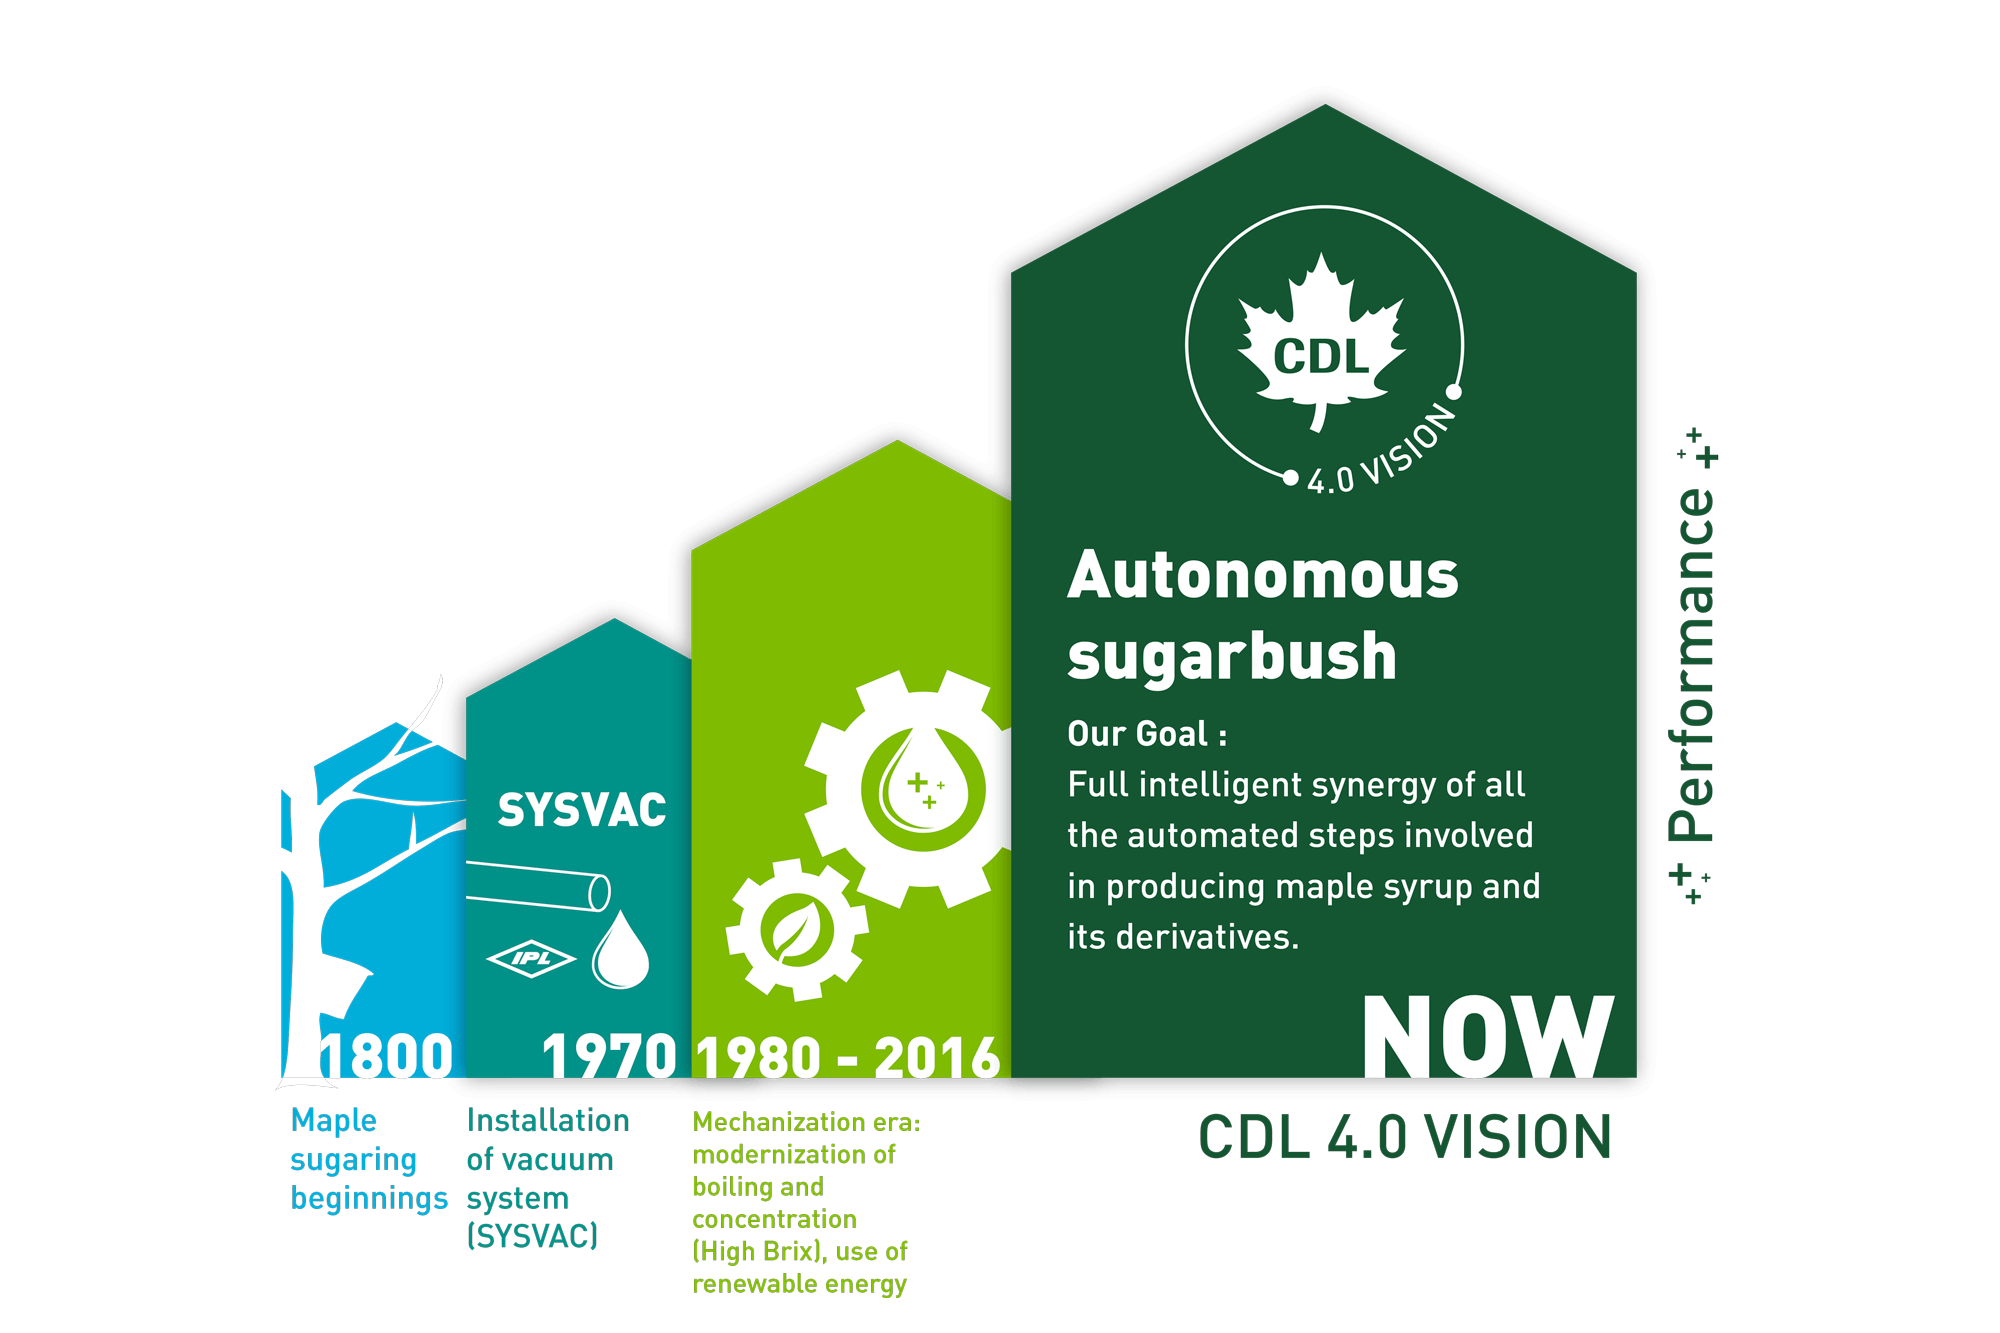 autonomous sugarbush by CDL 4.0 ViSion